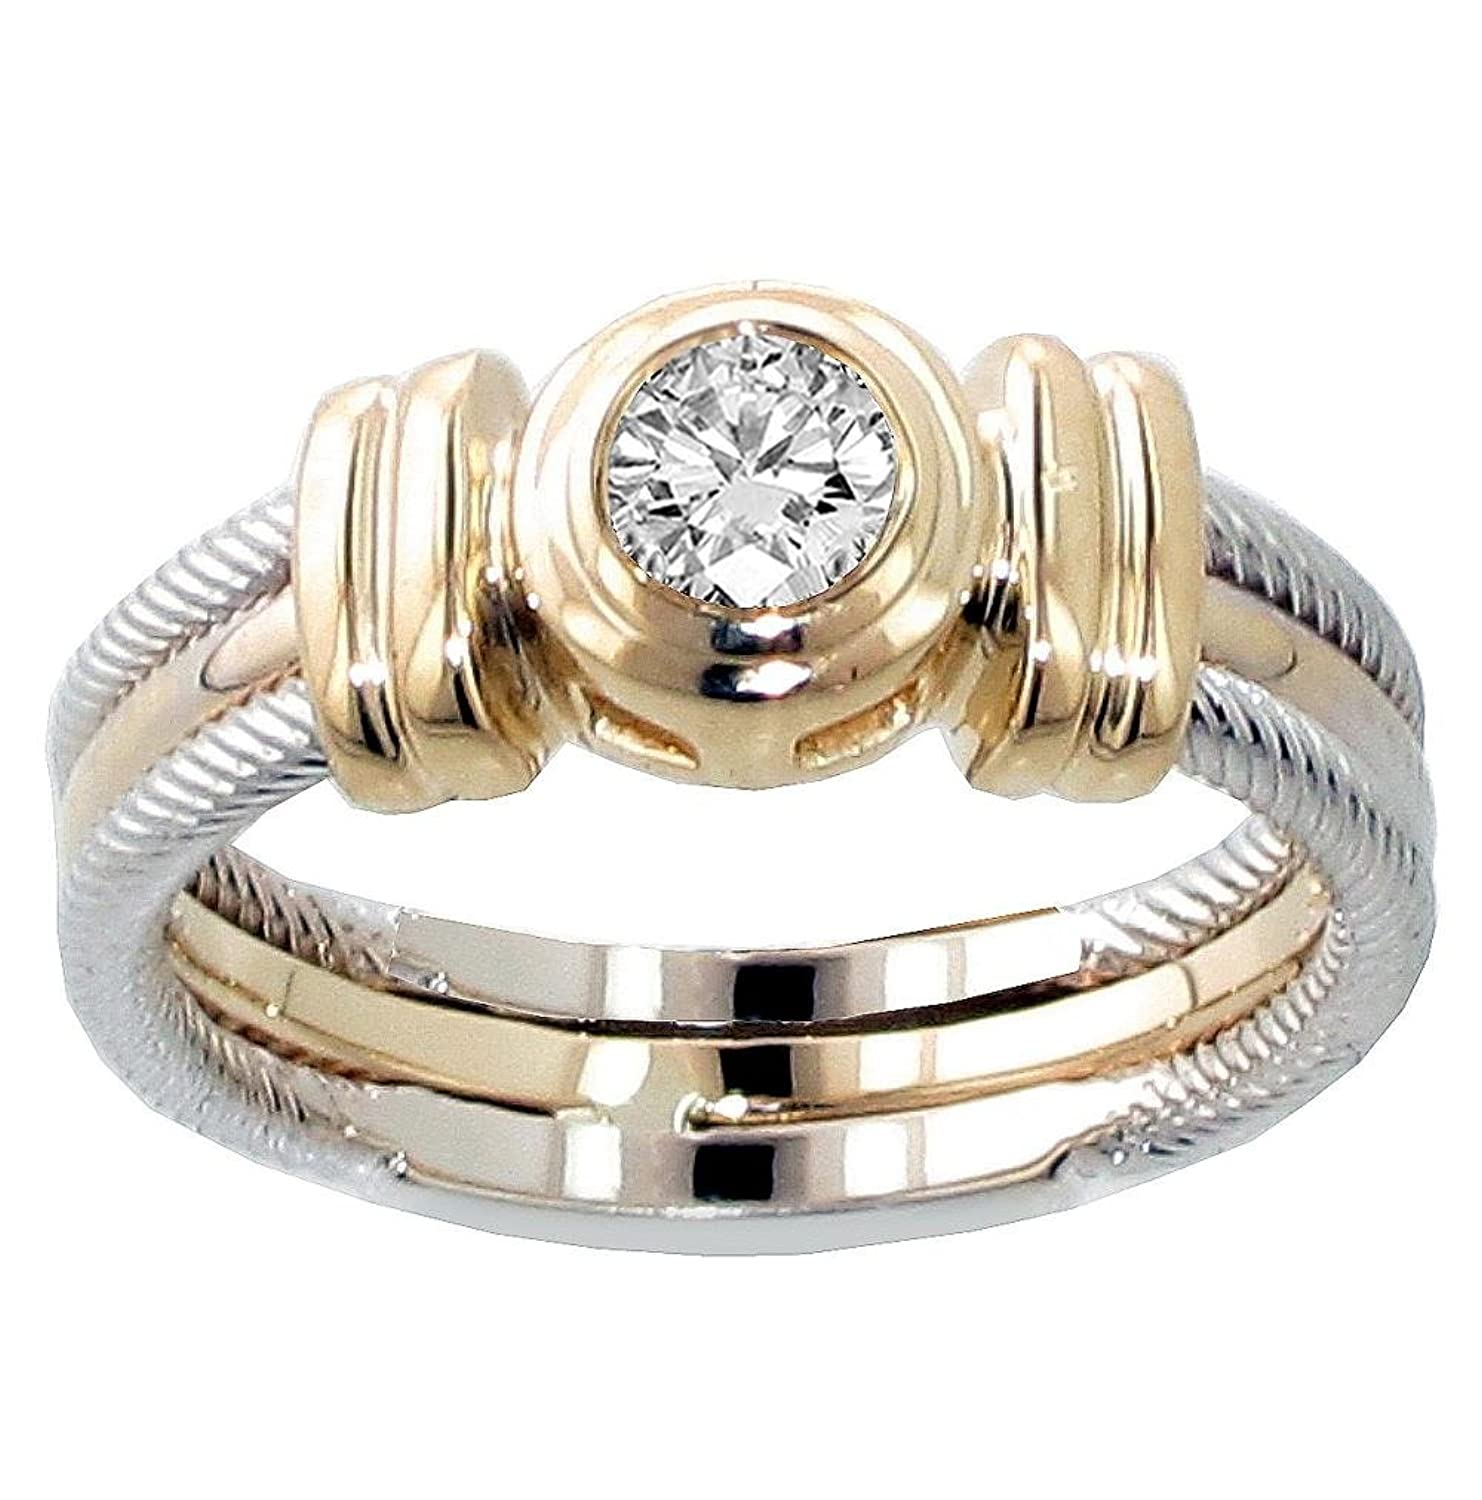 to engagement hover kaystore zoom zm mv en anniversary carat bands diamond gold rose tw kay ring